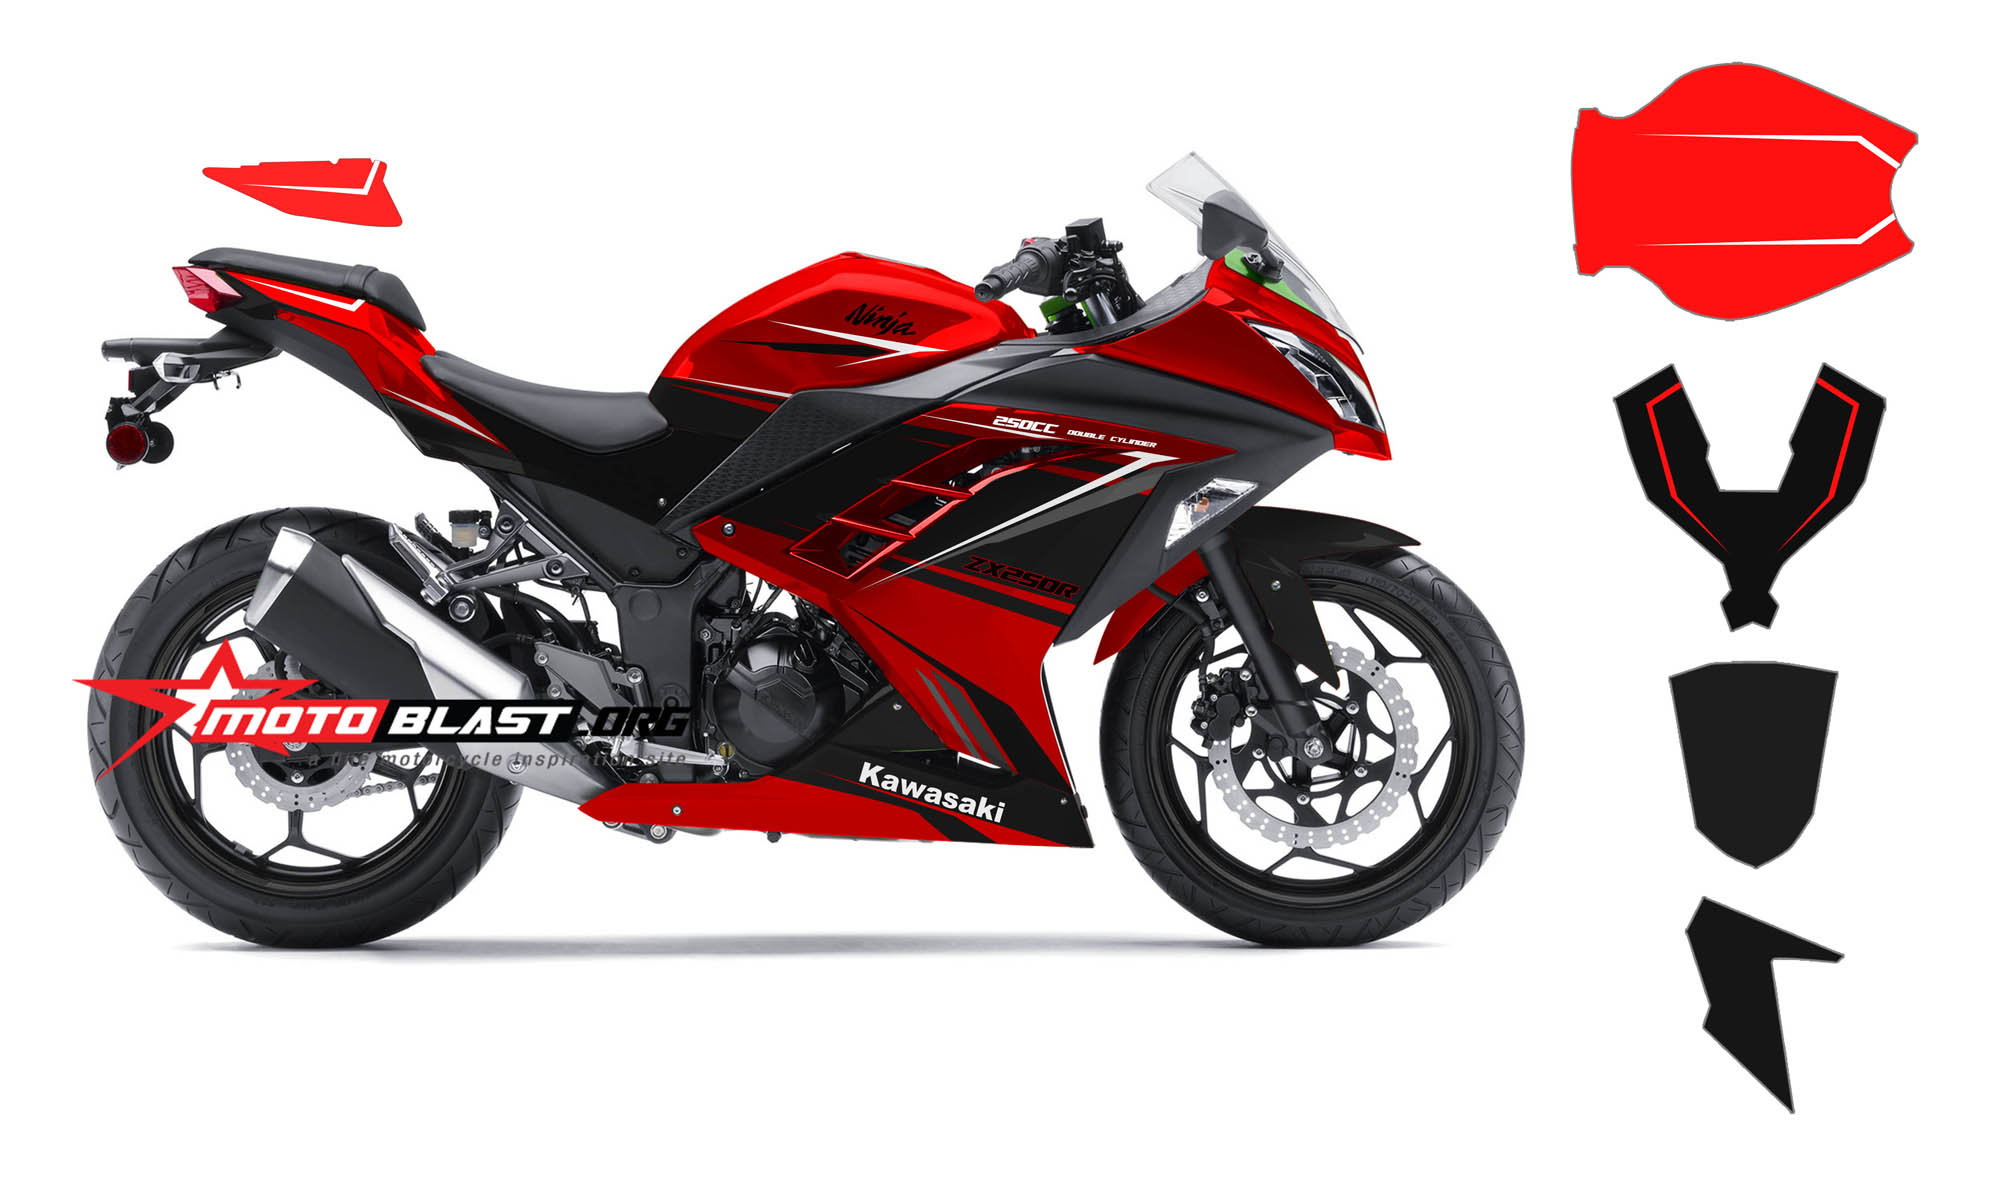 × 1200 in Modif Striping Kawasaki Ninja 250r fi Red! . ← Previous